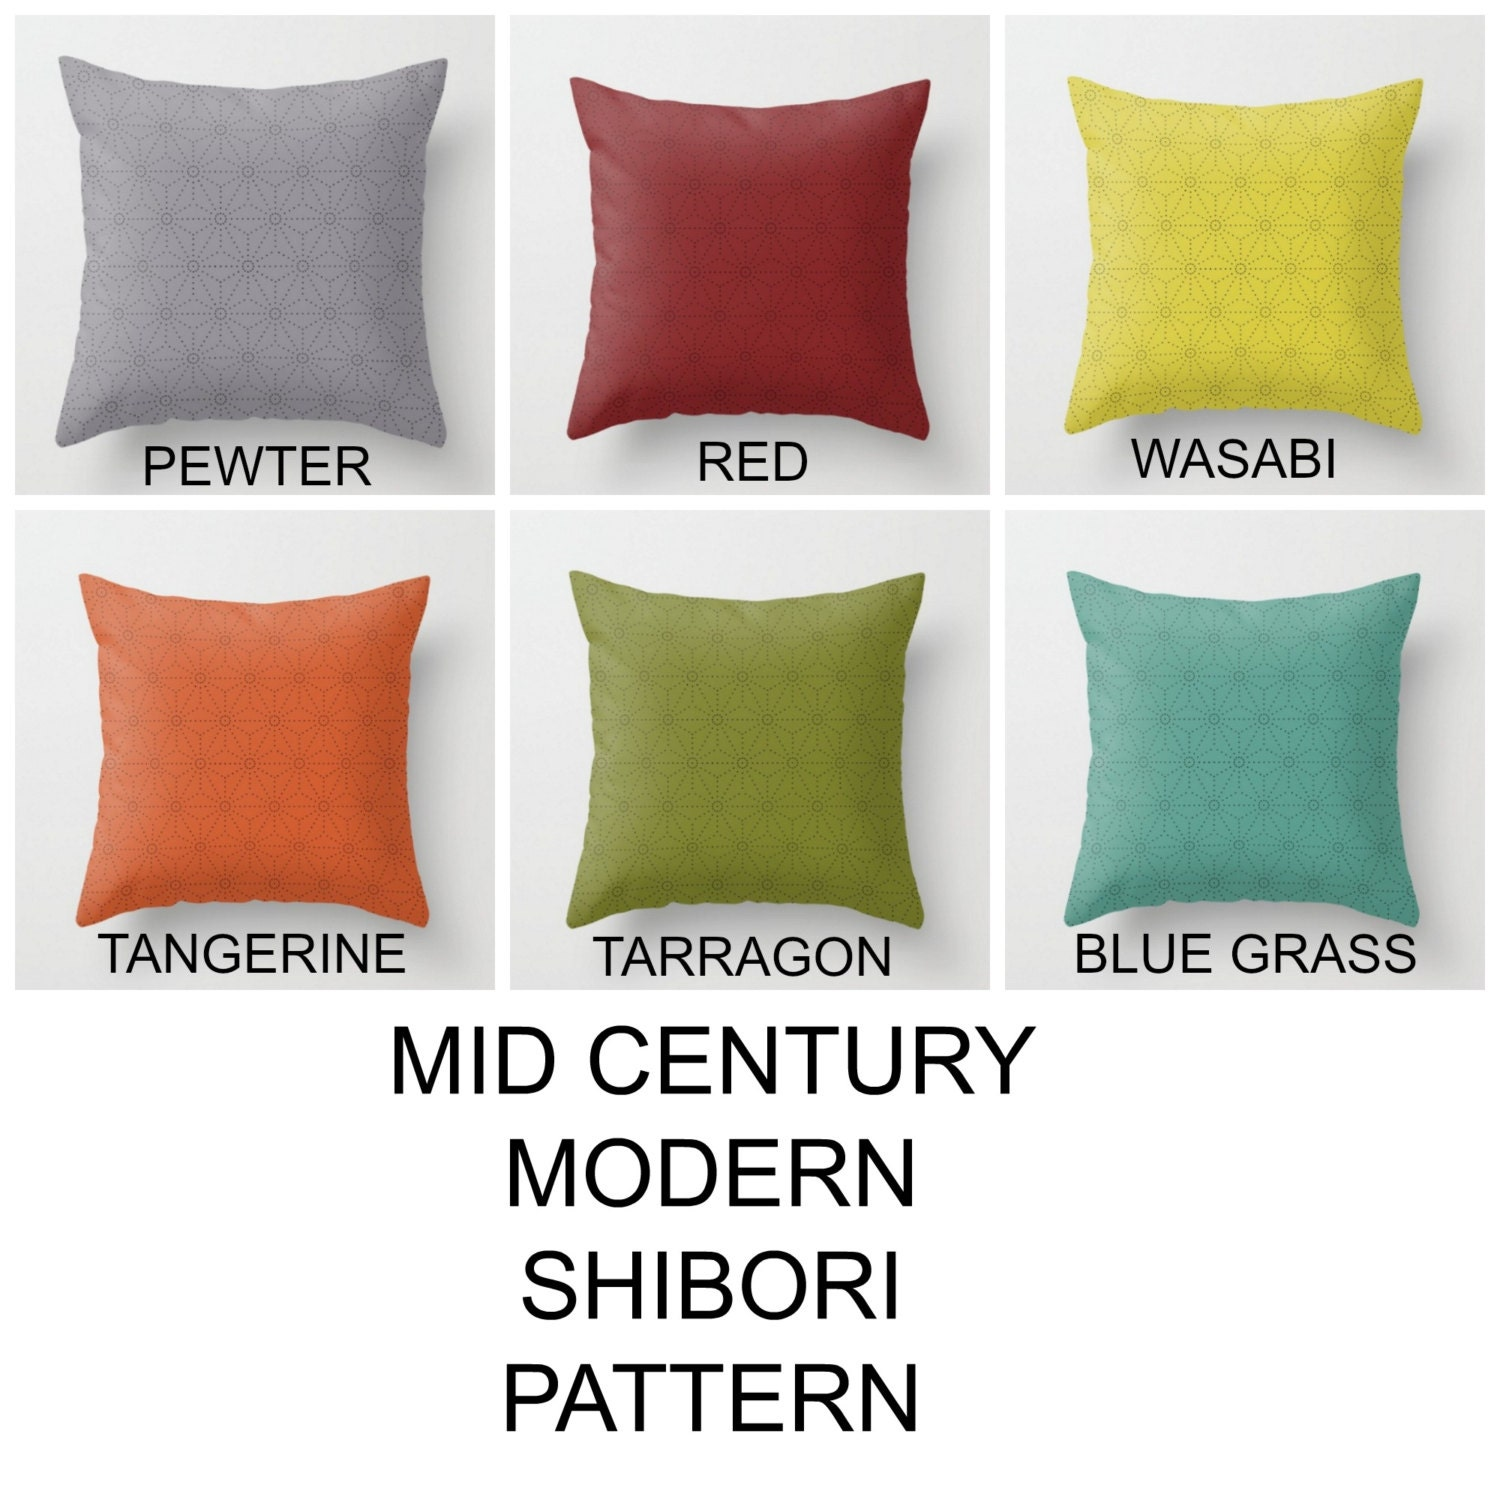 Mid century modern pillows Shibori design Asian inspired